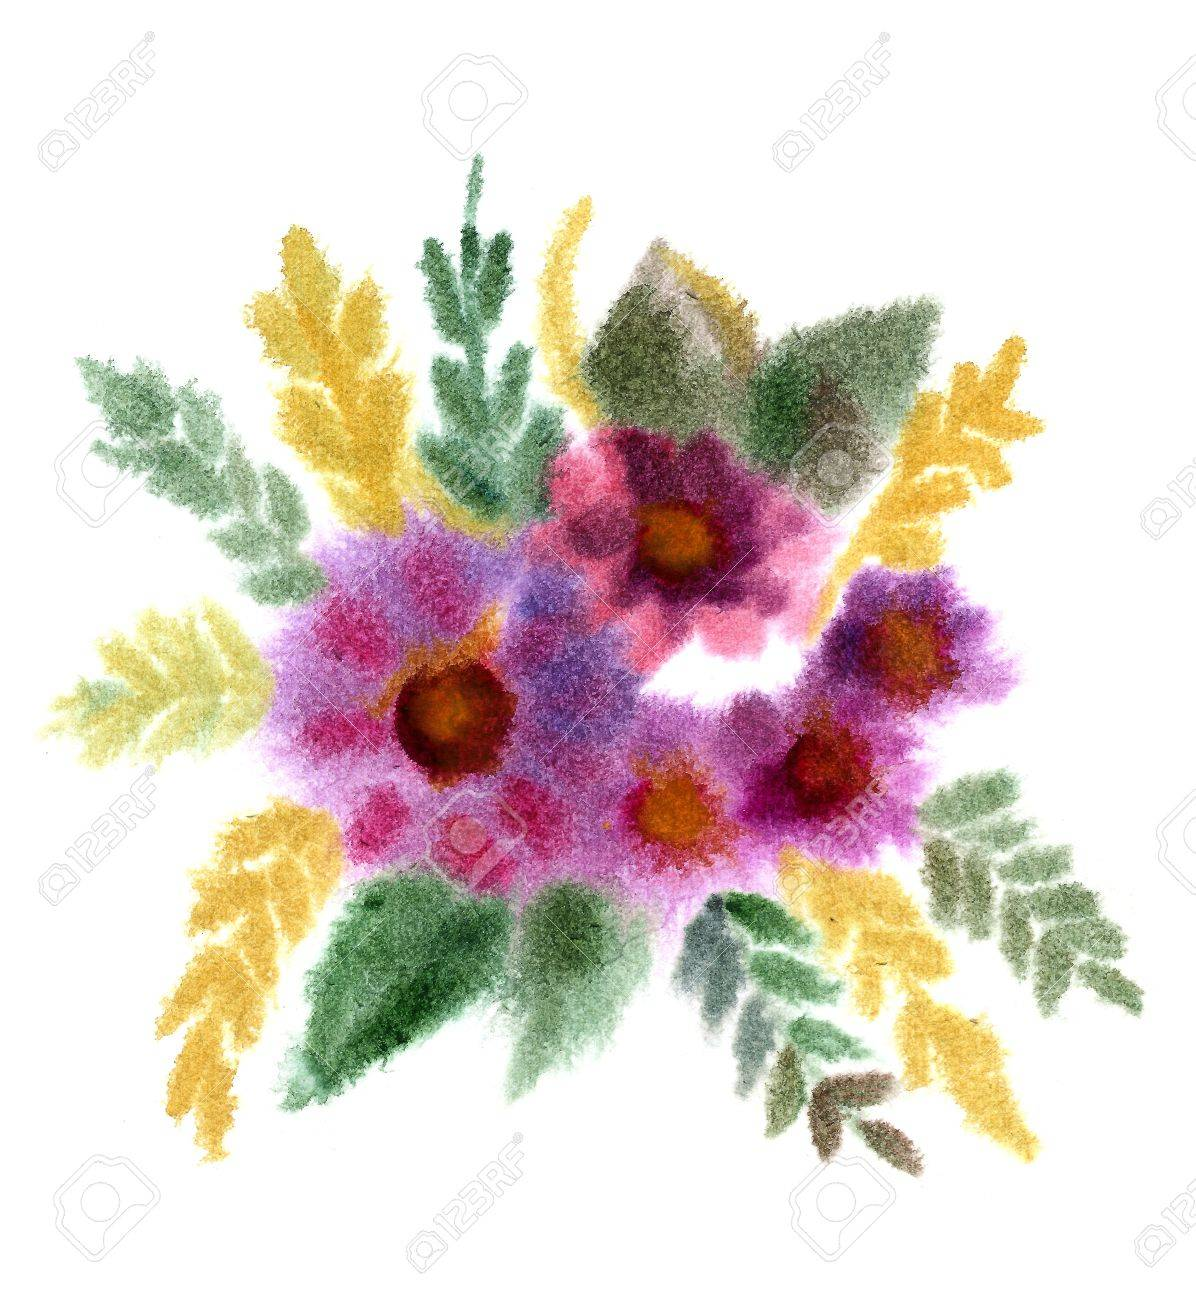 Bouquet Of Flowers Painted In Watercolor Isolated On White Stock